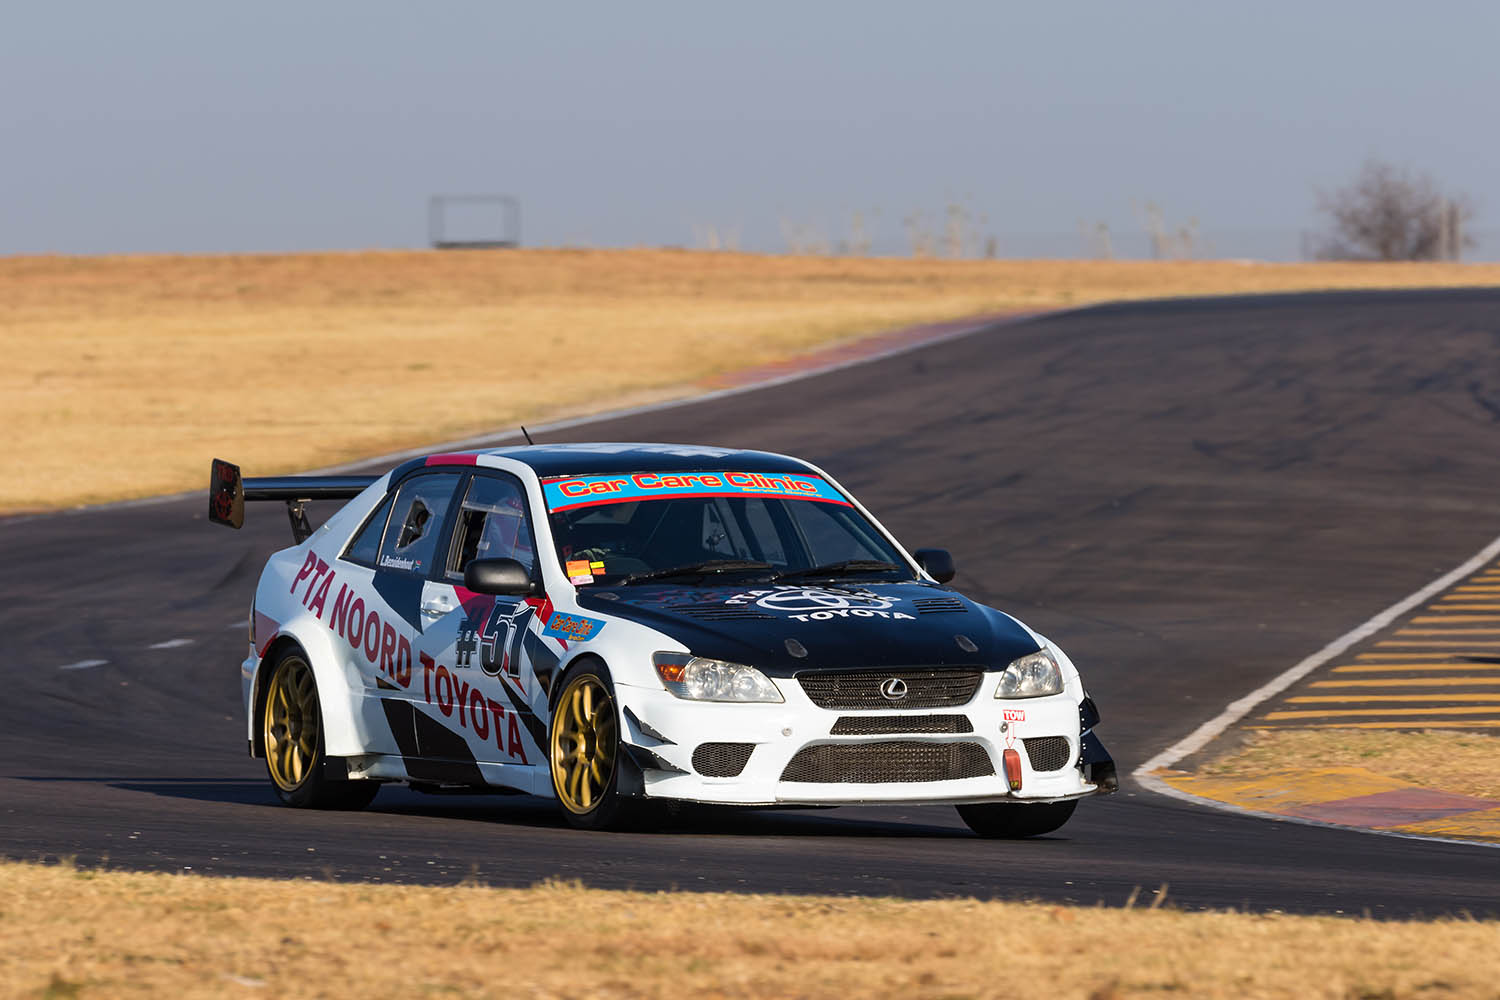 2020 Car Care Clinic 111 Sports & Saloons season opens at Red Star